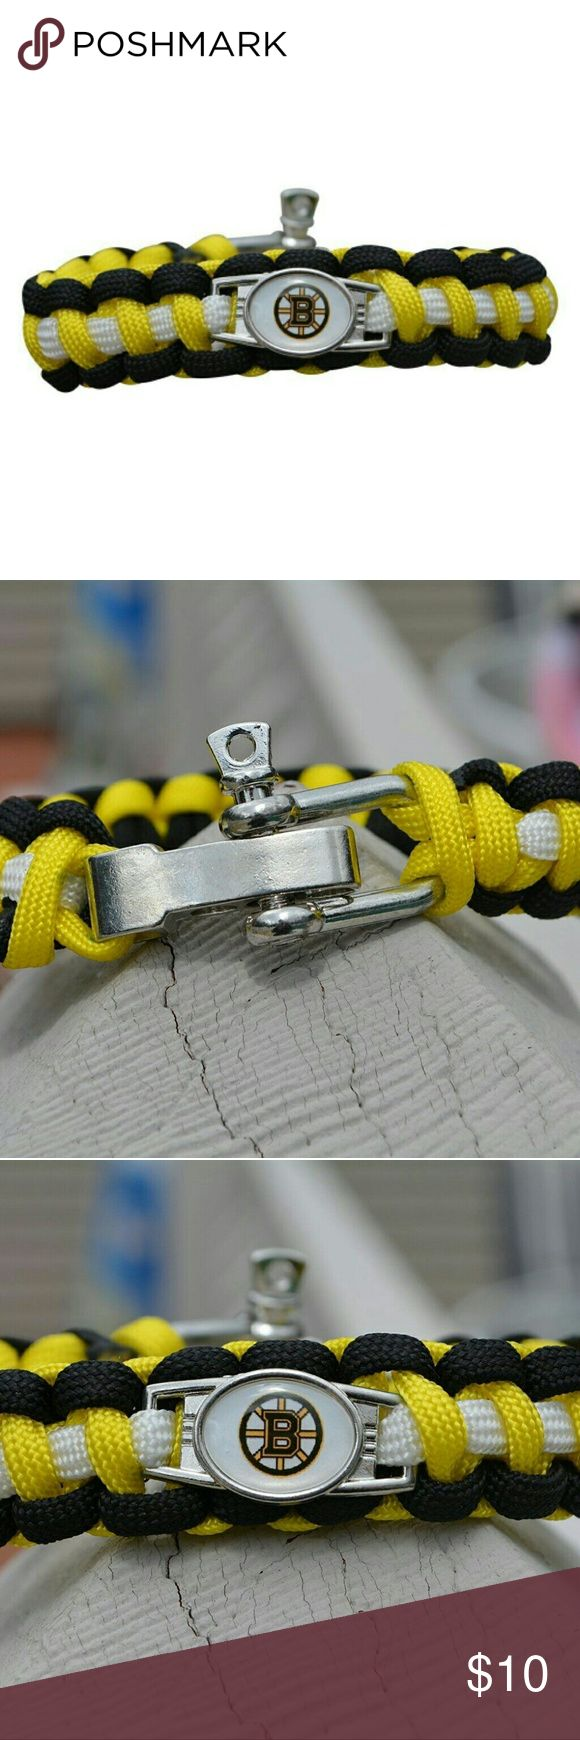 Boston Bruins Paracord Bracelet Boston Bruins Paracord Jewelry- Boston Bruins Paracord Bracelet - NFL Hockey Jewelry  WHO LOVES HOCKEY?! Show your Pride for the Boston Bruins with this sports bracelet. This listing is for one Boston Bruins bracelet. 7 inches in length with an additional 2 inch extension. ?  Perfect Gift for Bruins Hockey Fans!! Jewelry Bracelets